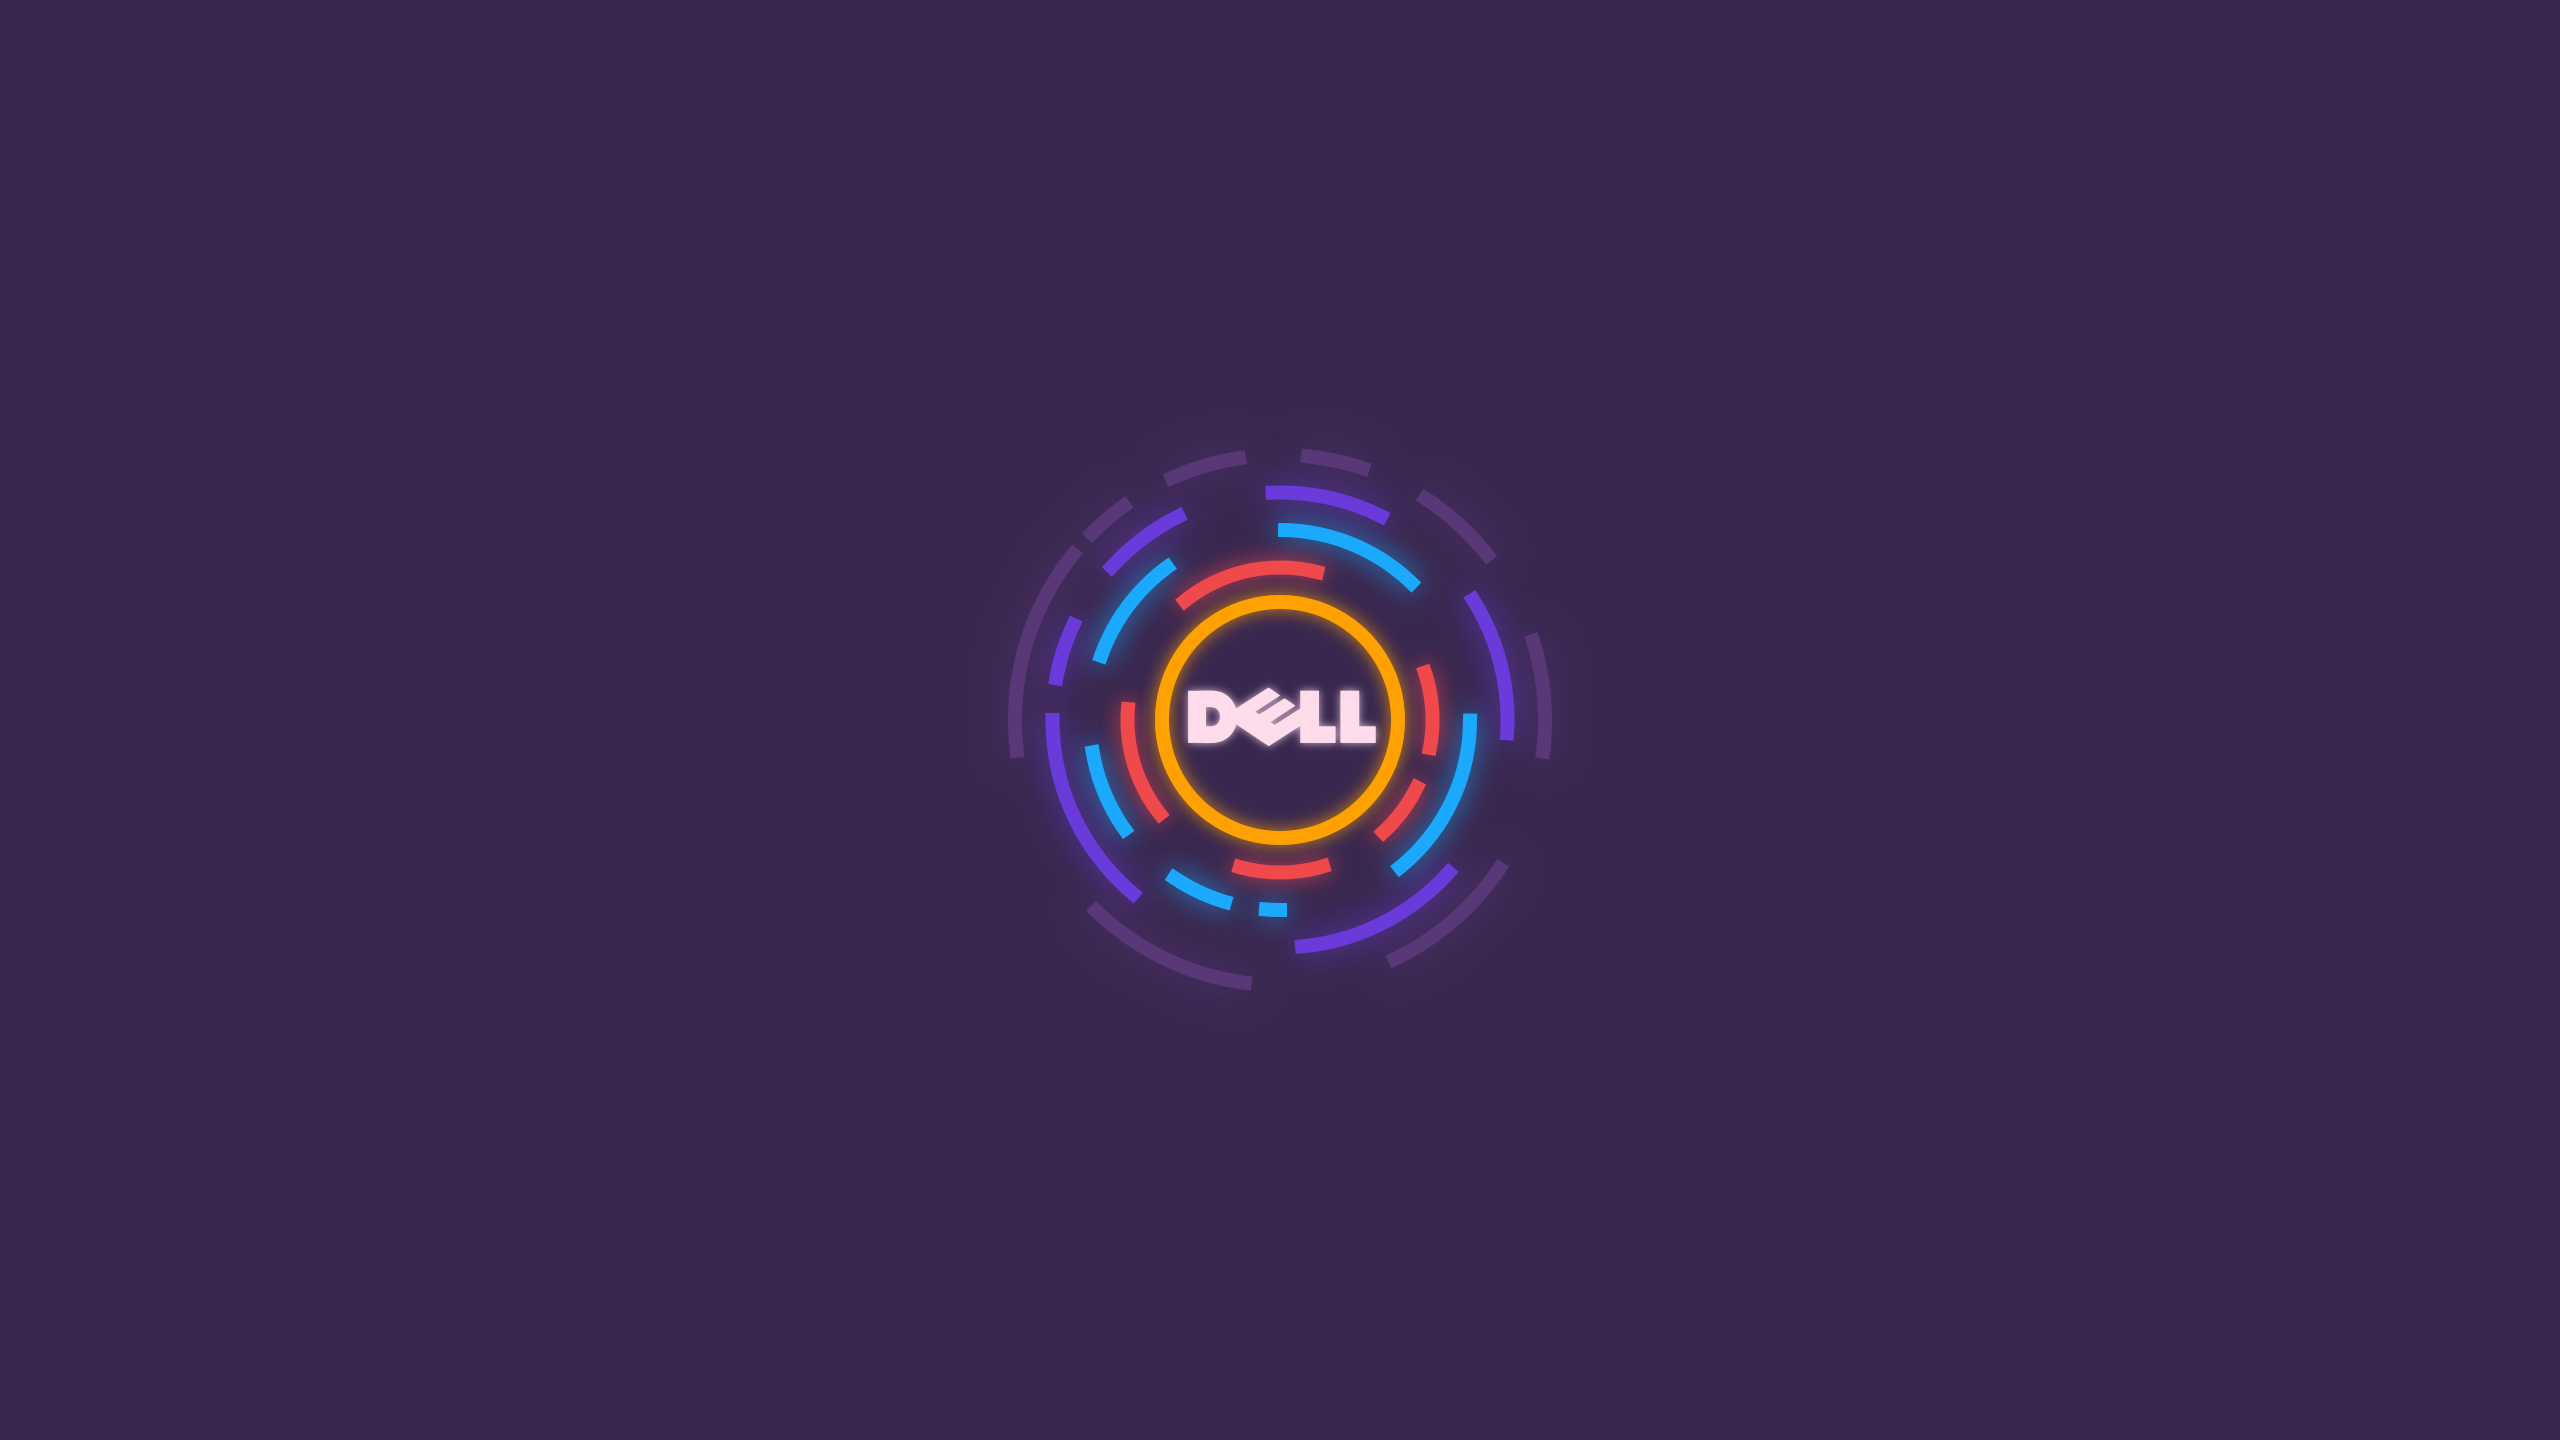 Cars Hd Mobile Wallpapers Dell Logo Minimalism Hd Computer 4k Wallpapers Images